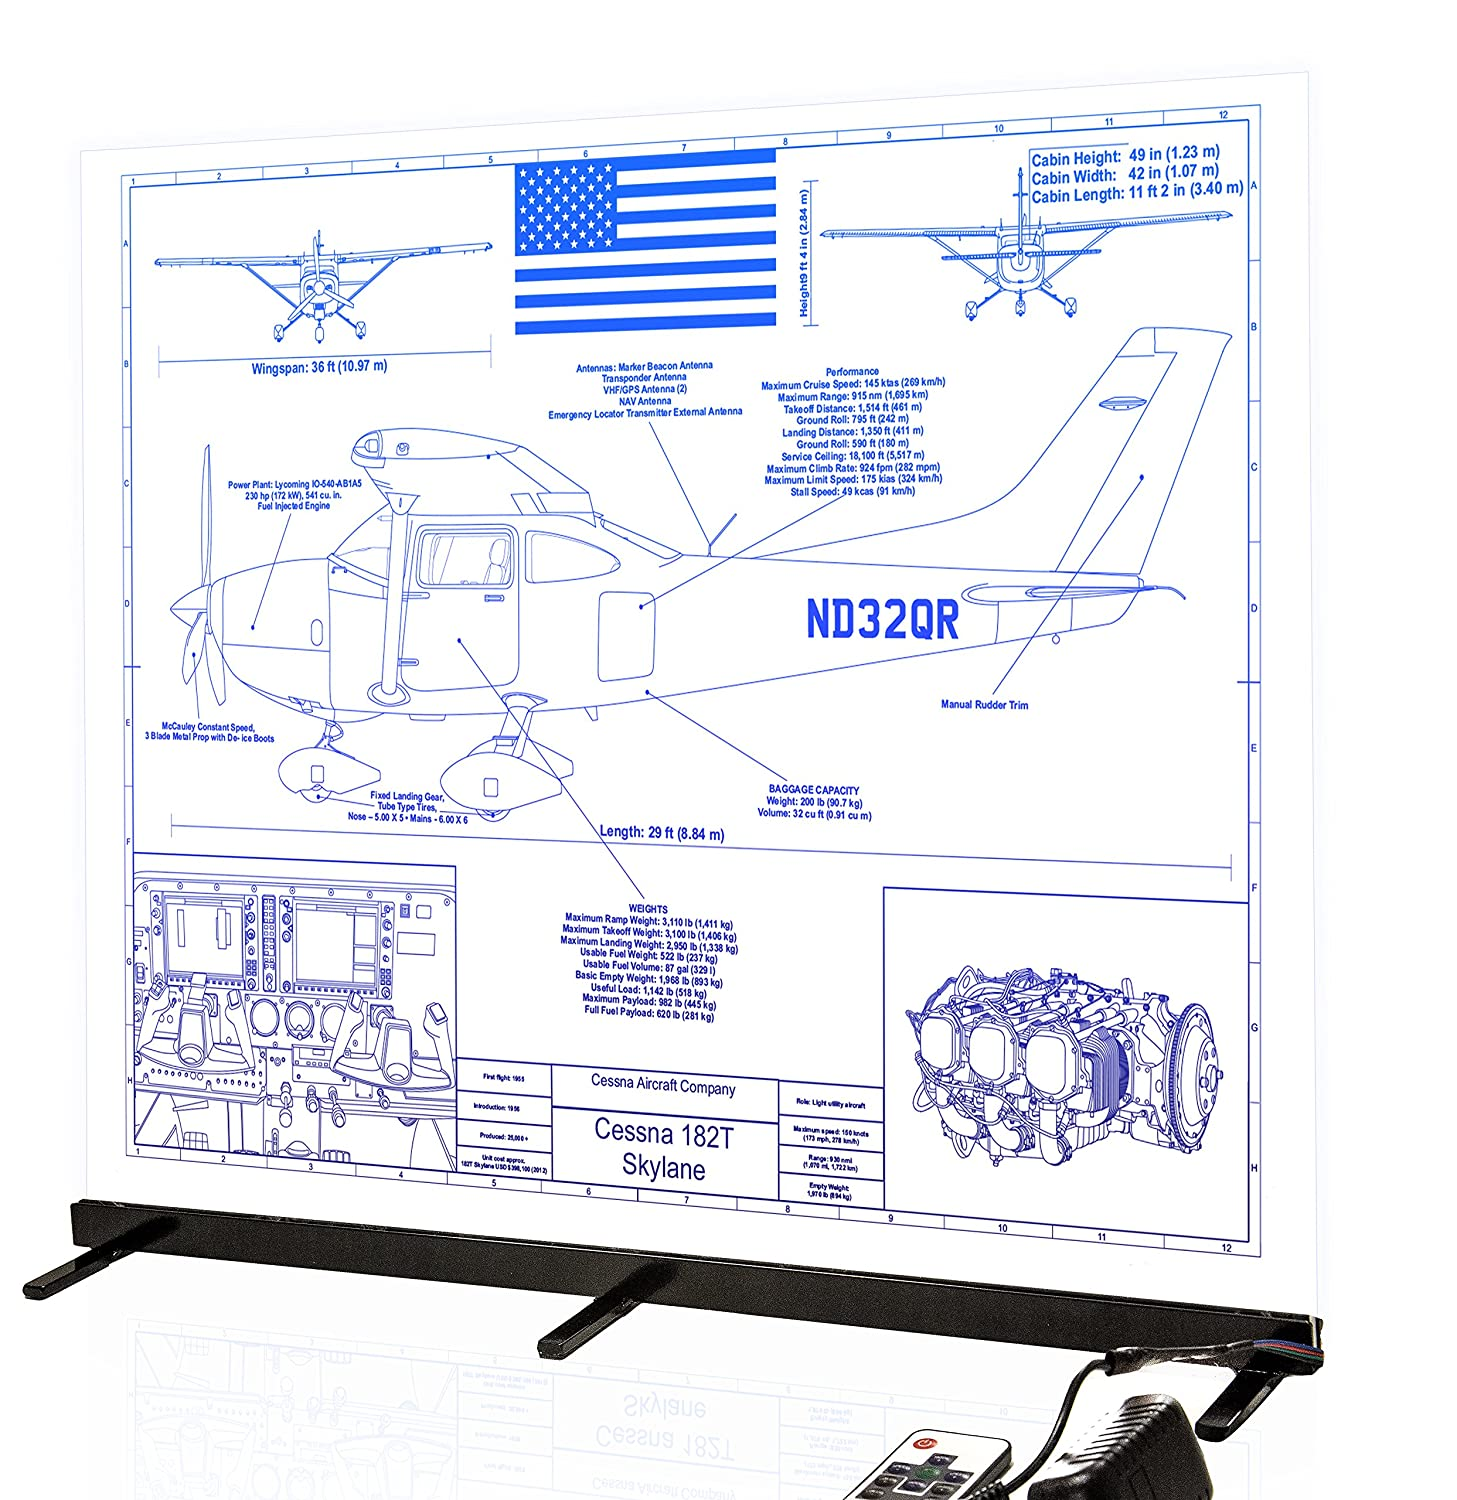 Cessna 340 Wiring Diagram Layout Diagrams Wing 1965 172 Trusted Rh Wiringhubme Today 210 Fuel System